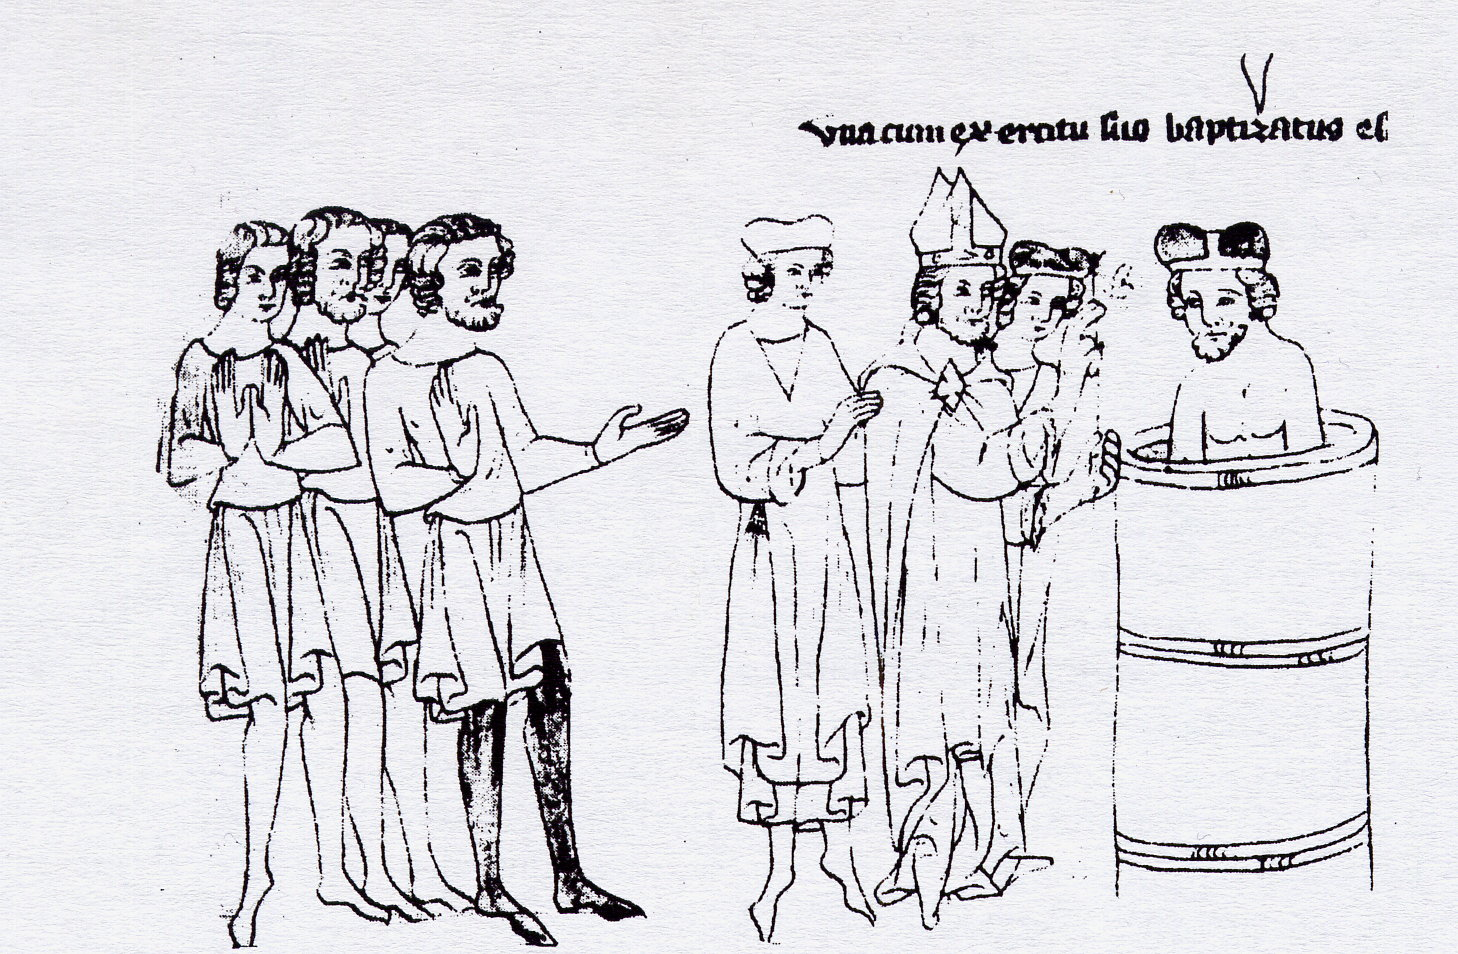 Baptism_of_the_bohemian_duke_borivoj.jpg